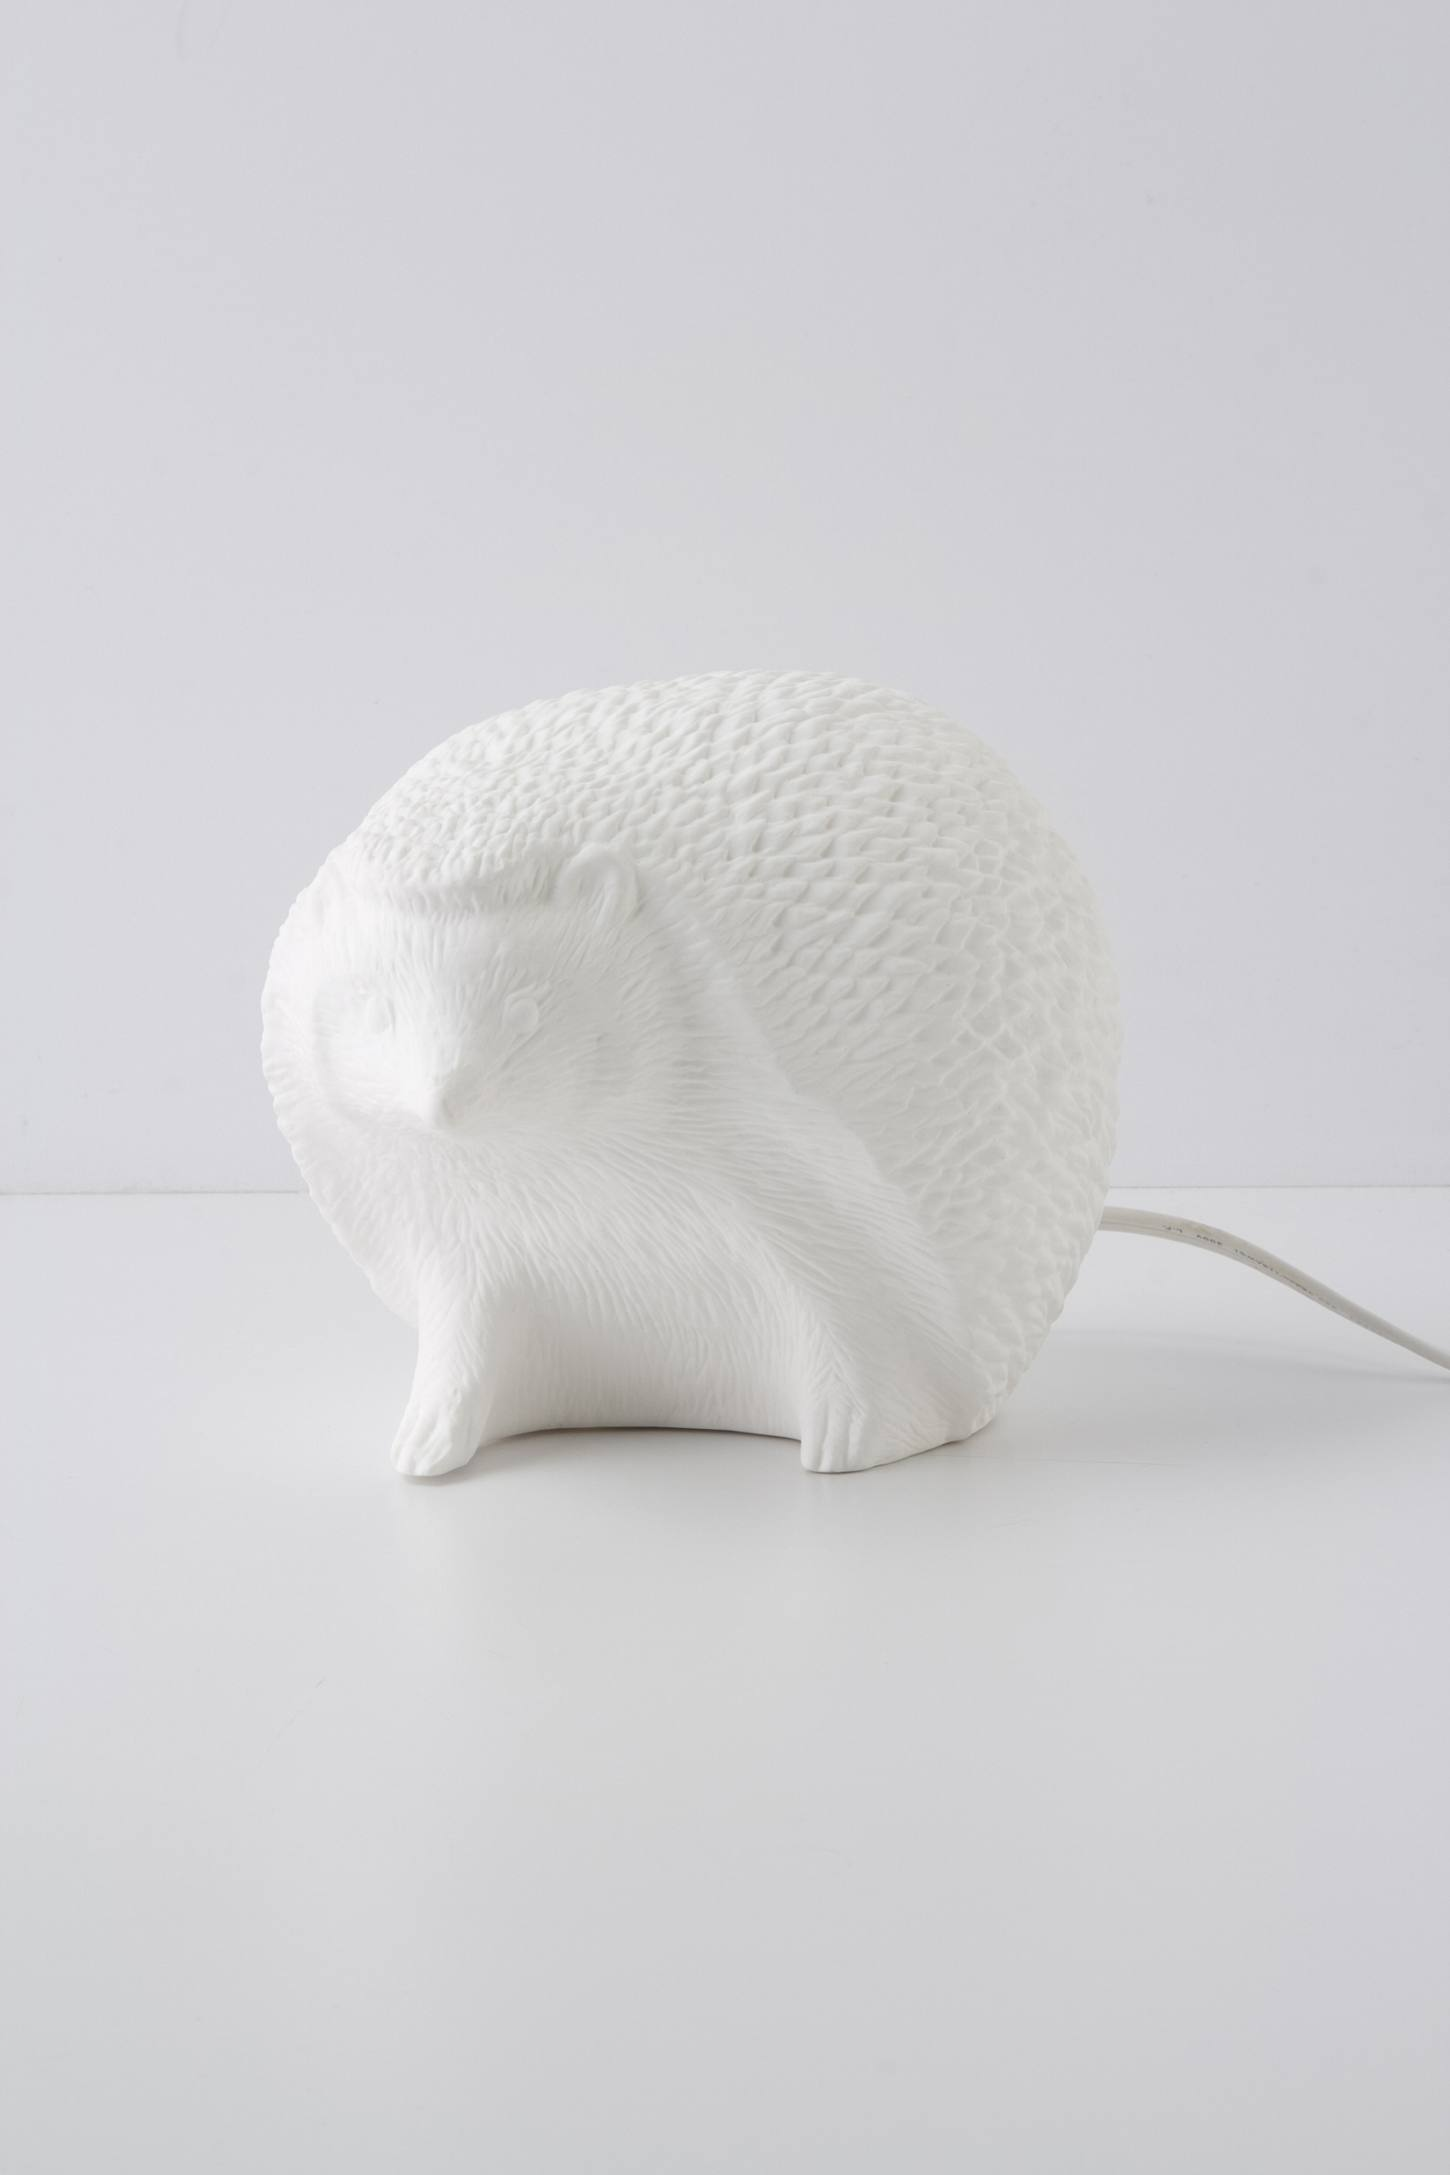 Glowing Hedgehog Table Lamp